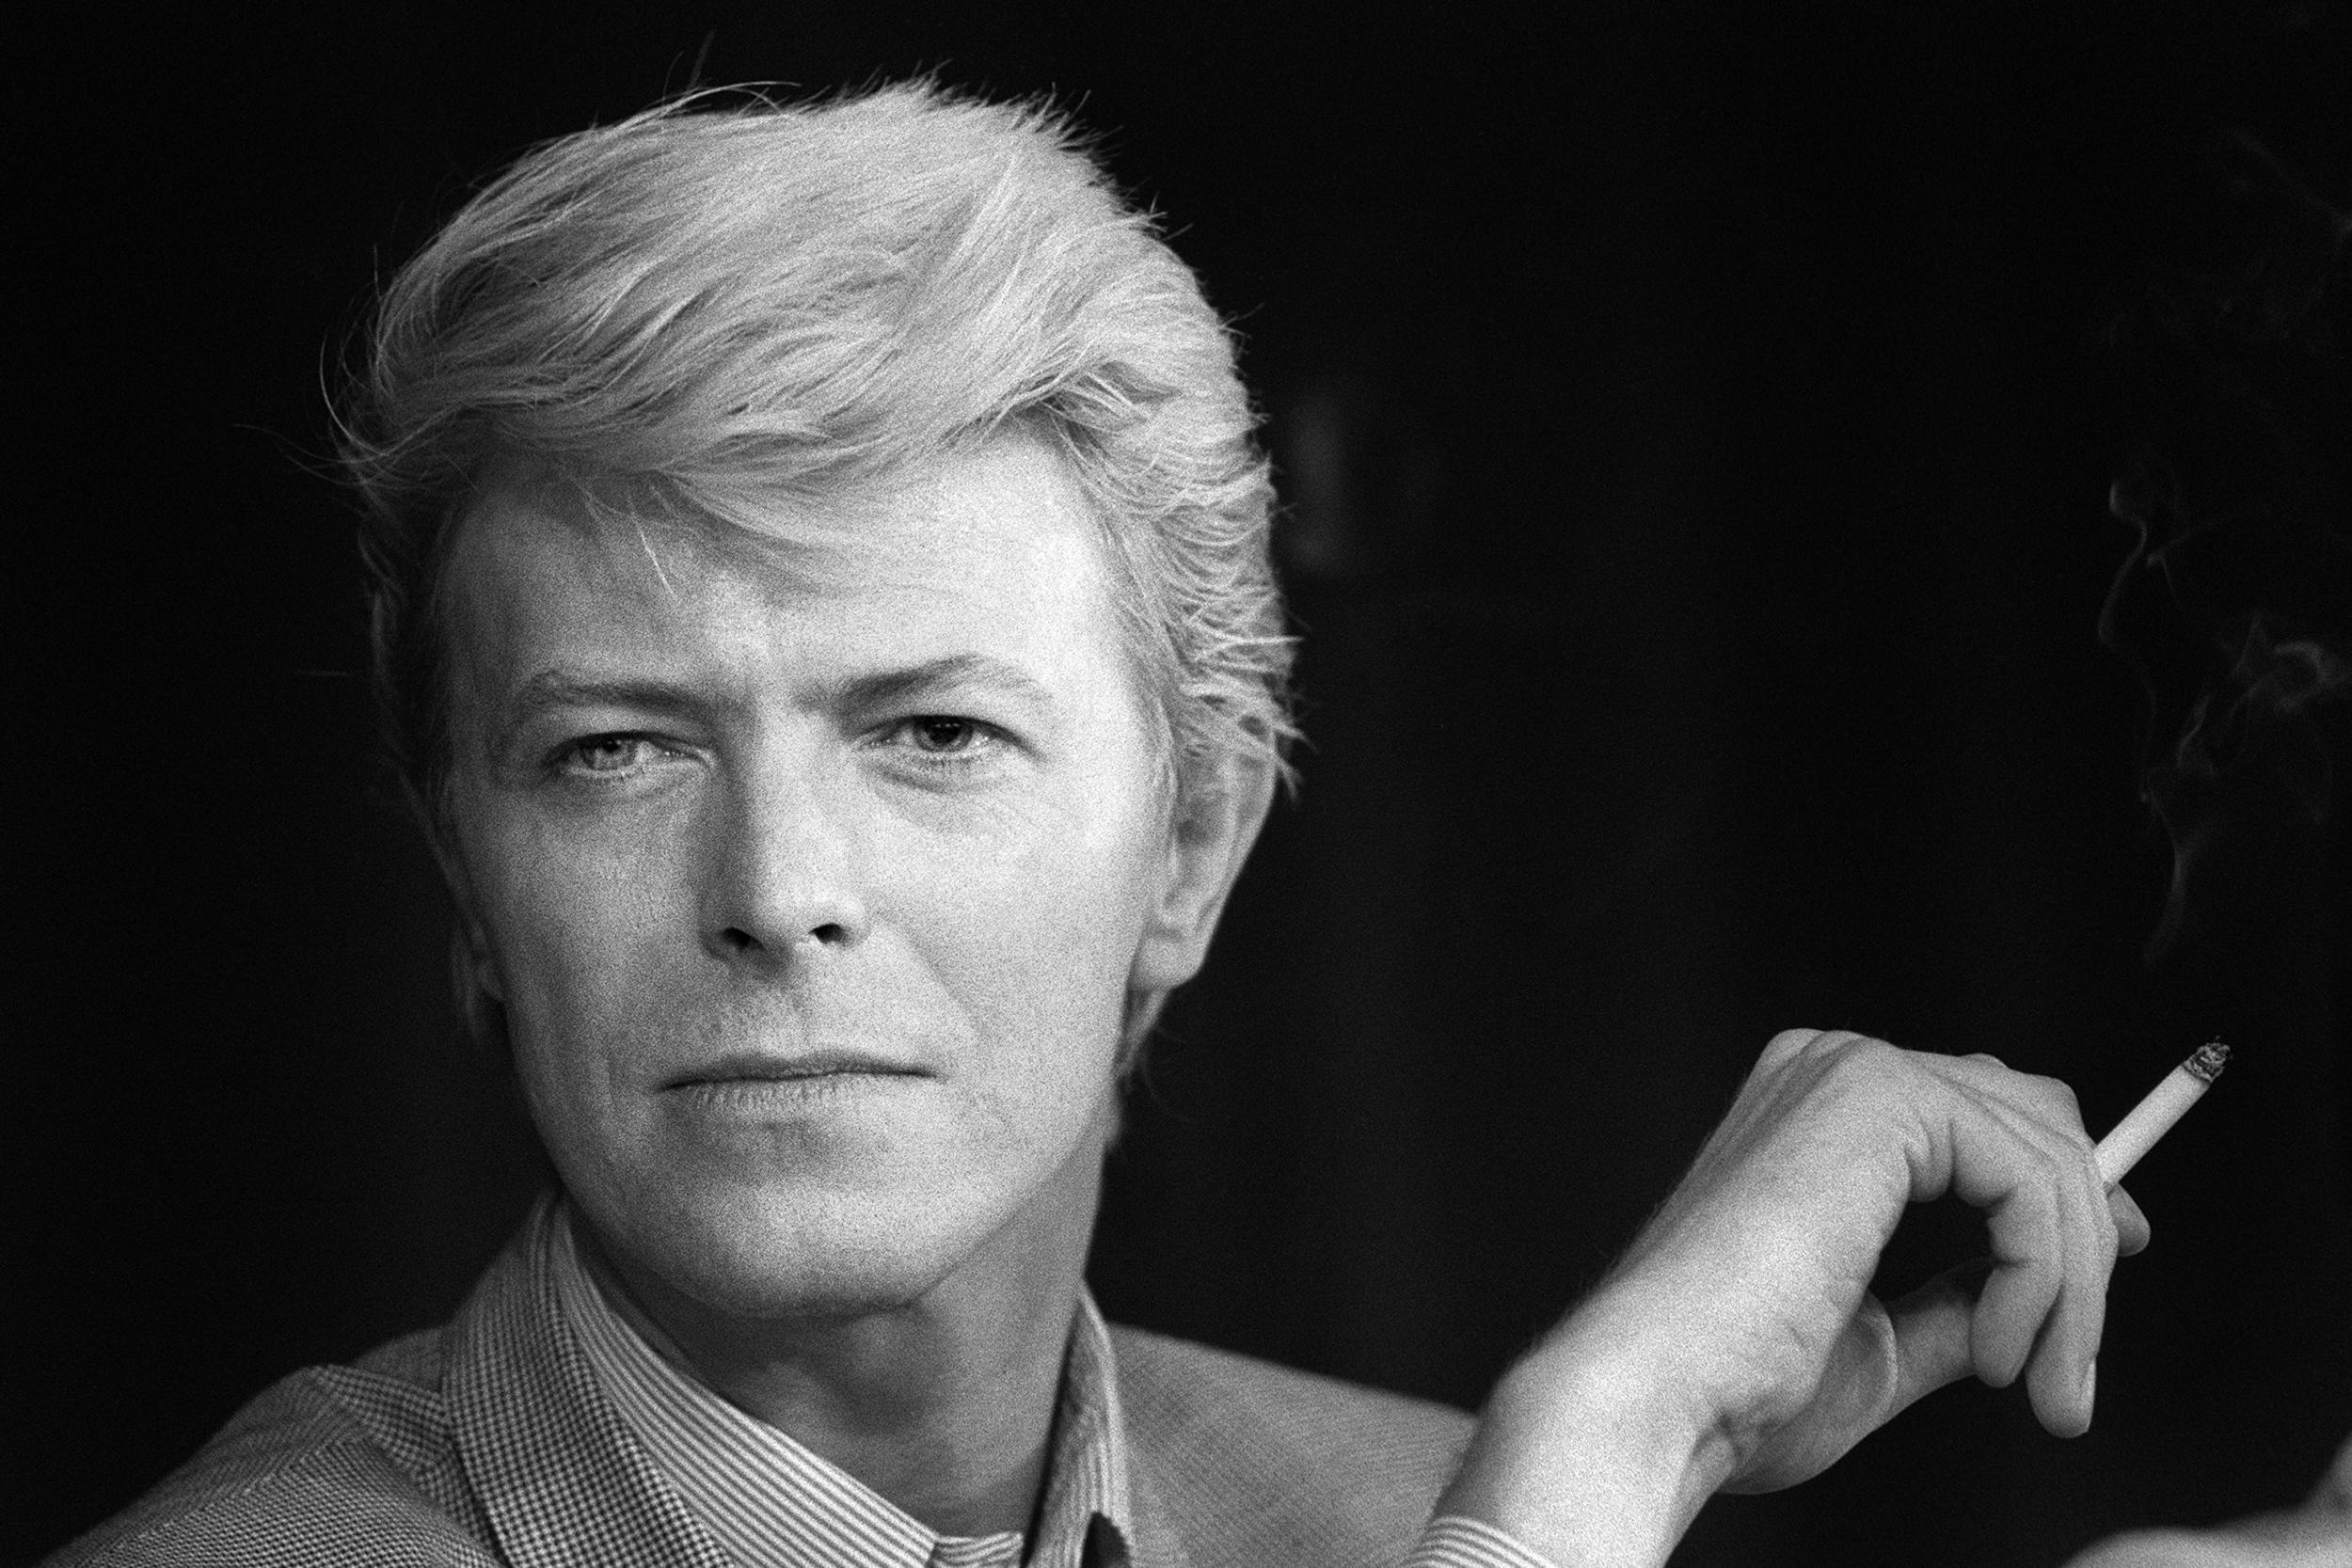 This anecdote about David Bowie and Roger Moore's short-lived friendship is incredible